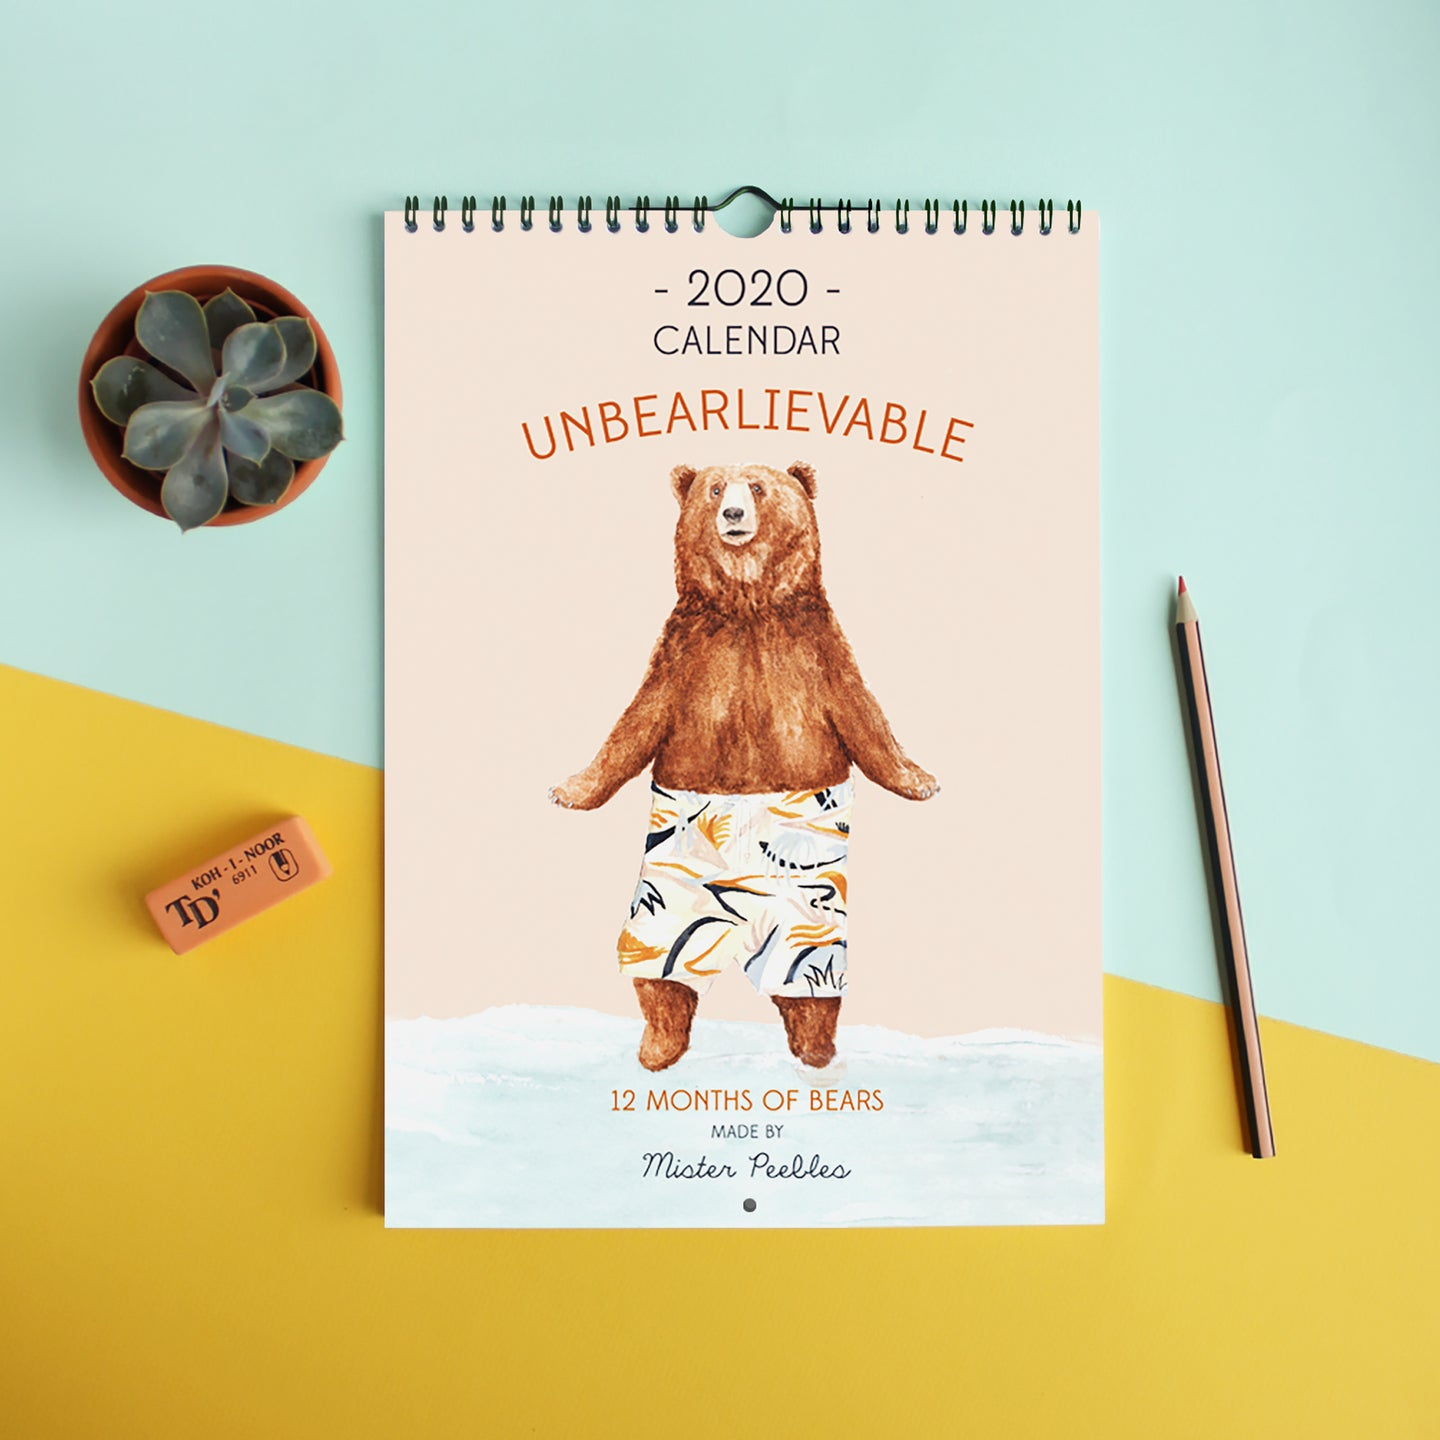 SALE! 2020 'Unbearlievable' Bear Calendar